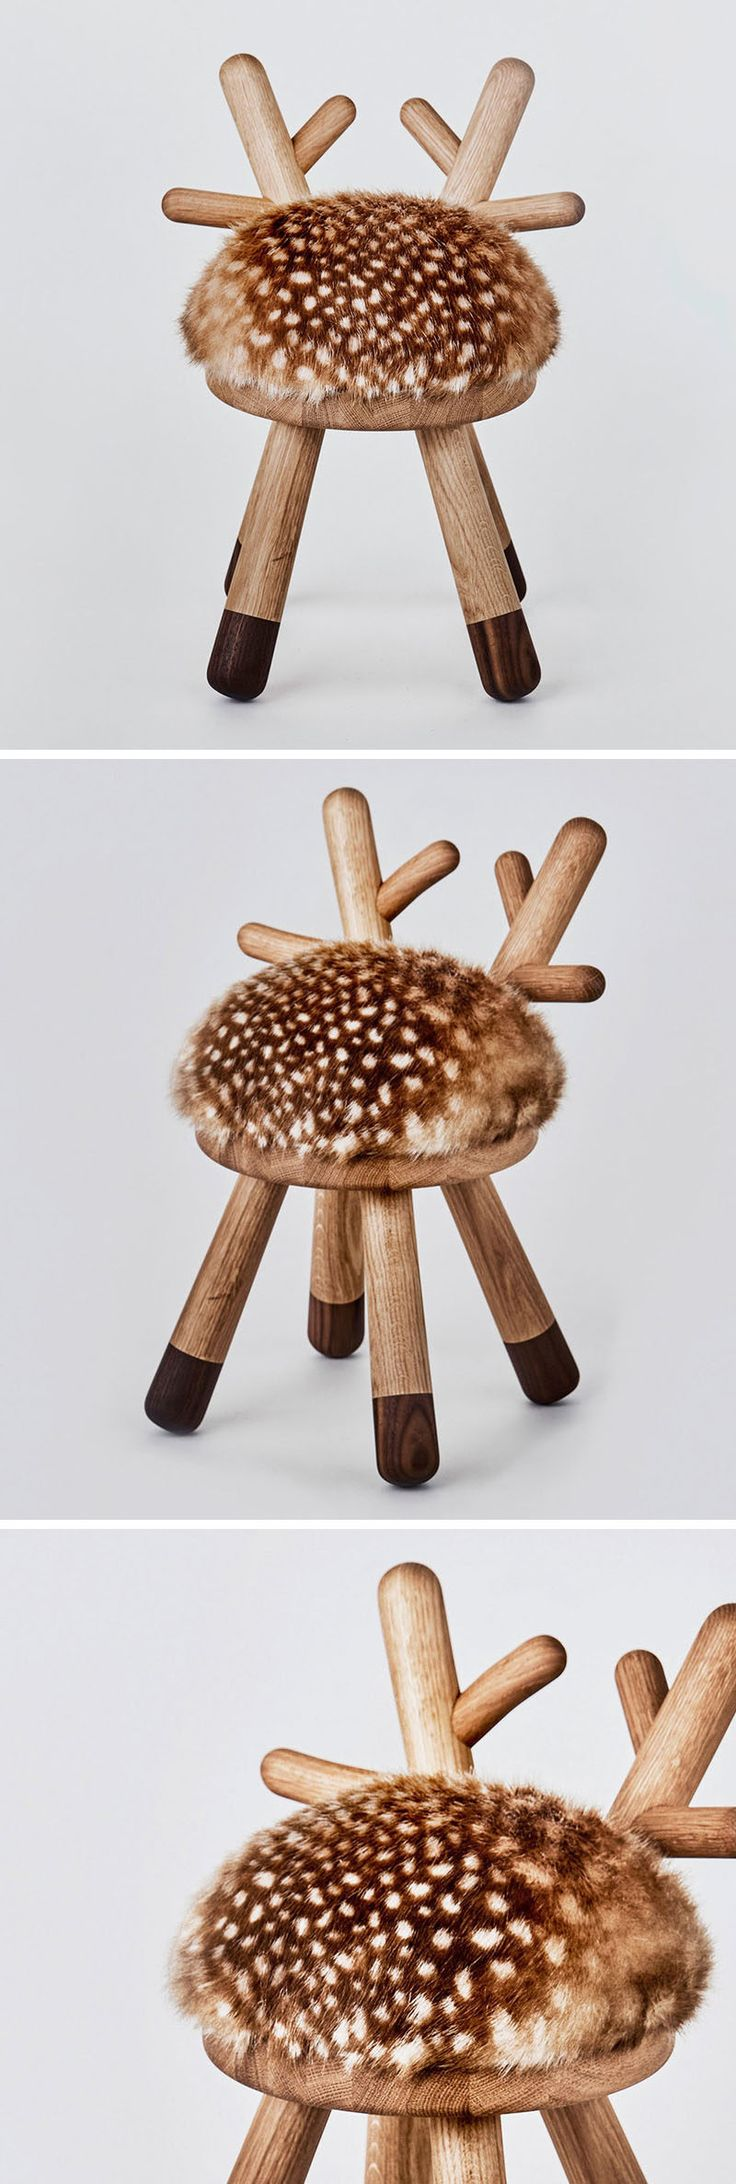 Japanese designer Takeshi Sawada, has designed Bambi as part of a collection of quirky farm animal inspired stools for EO - Elements Optimal.